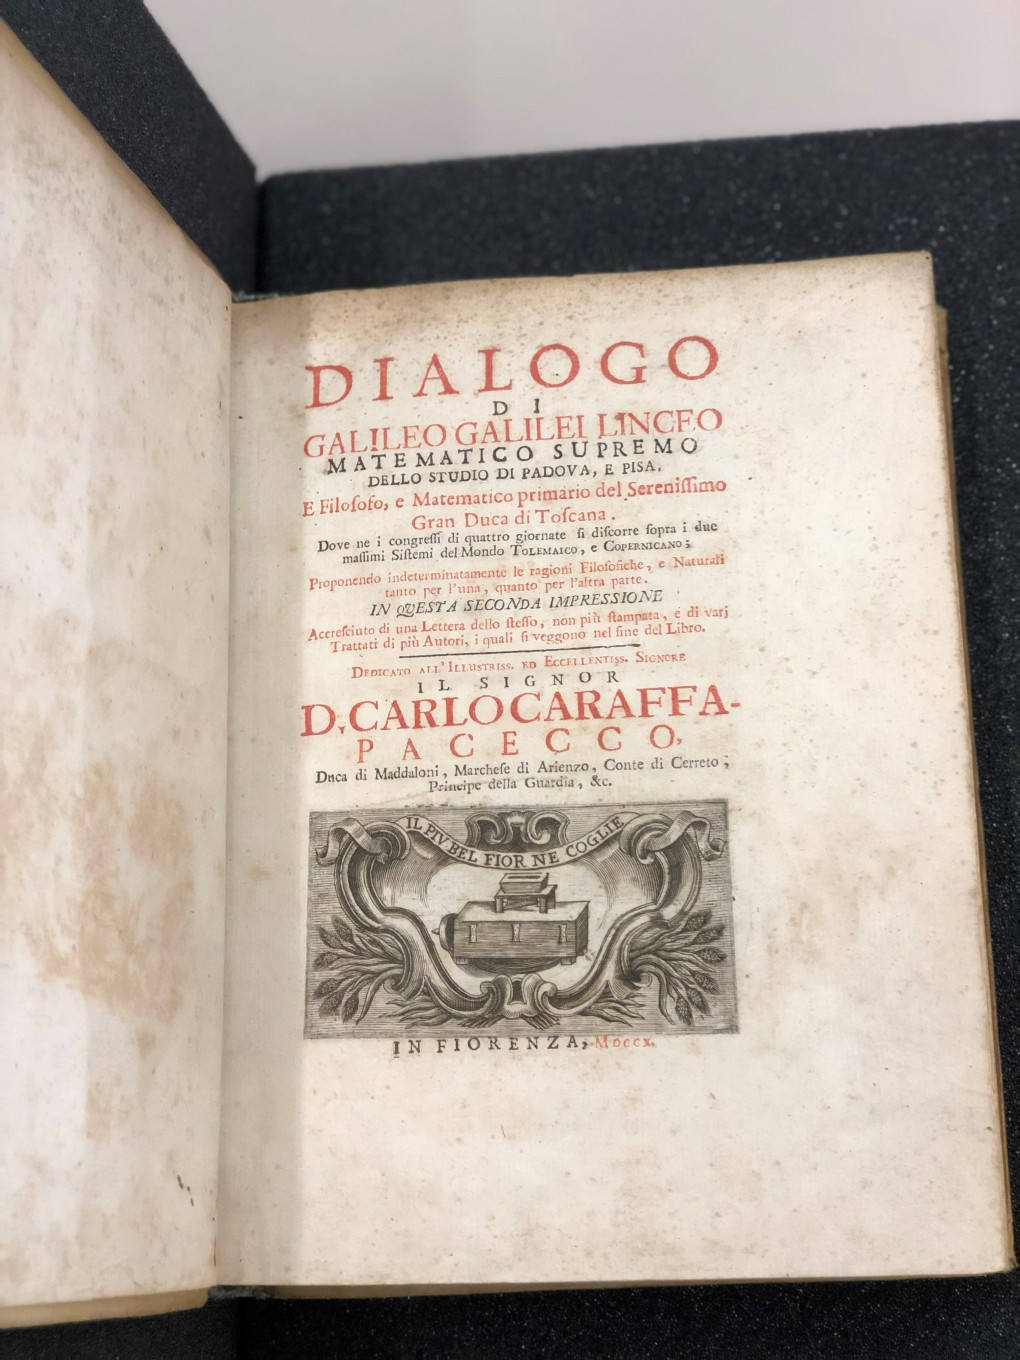 Title page of Galileo Galilei. Dialogo di Galileo Galilei (for full title see caption). Stains on pages due to age and illustration beneath title text.